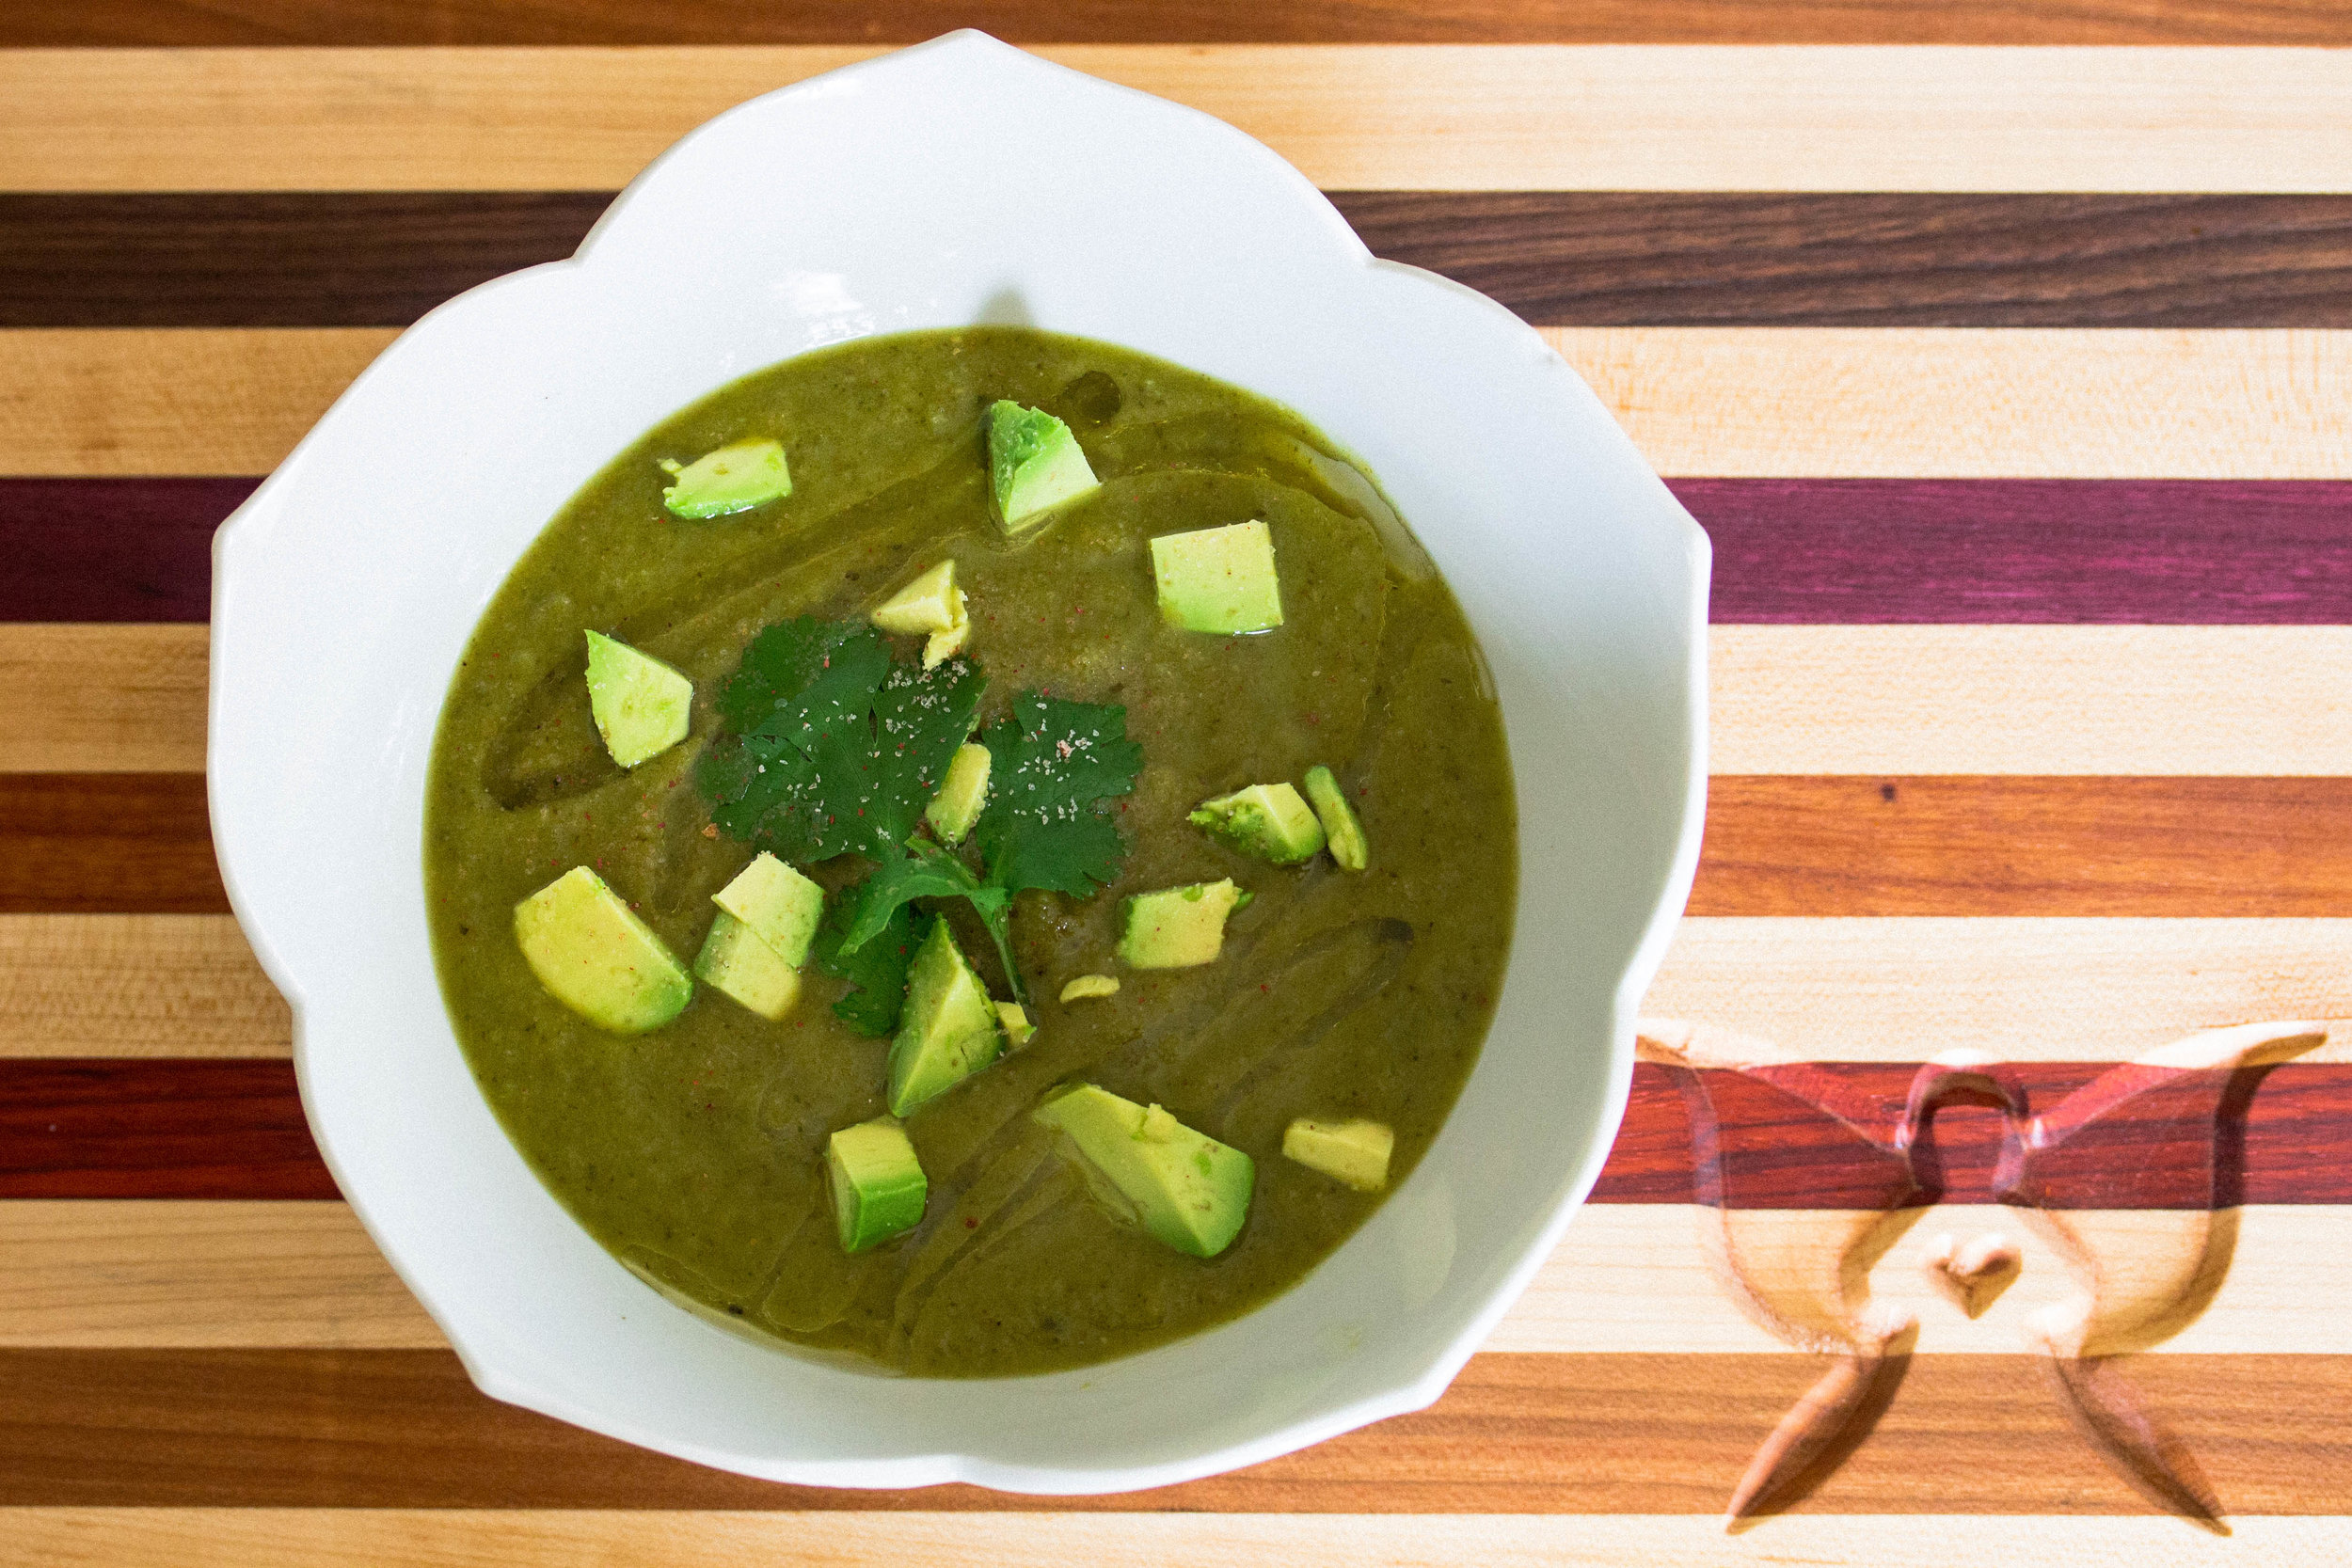 Pure soup and serve garnished with avocado and cilantro.